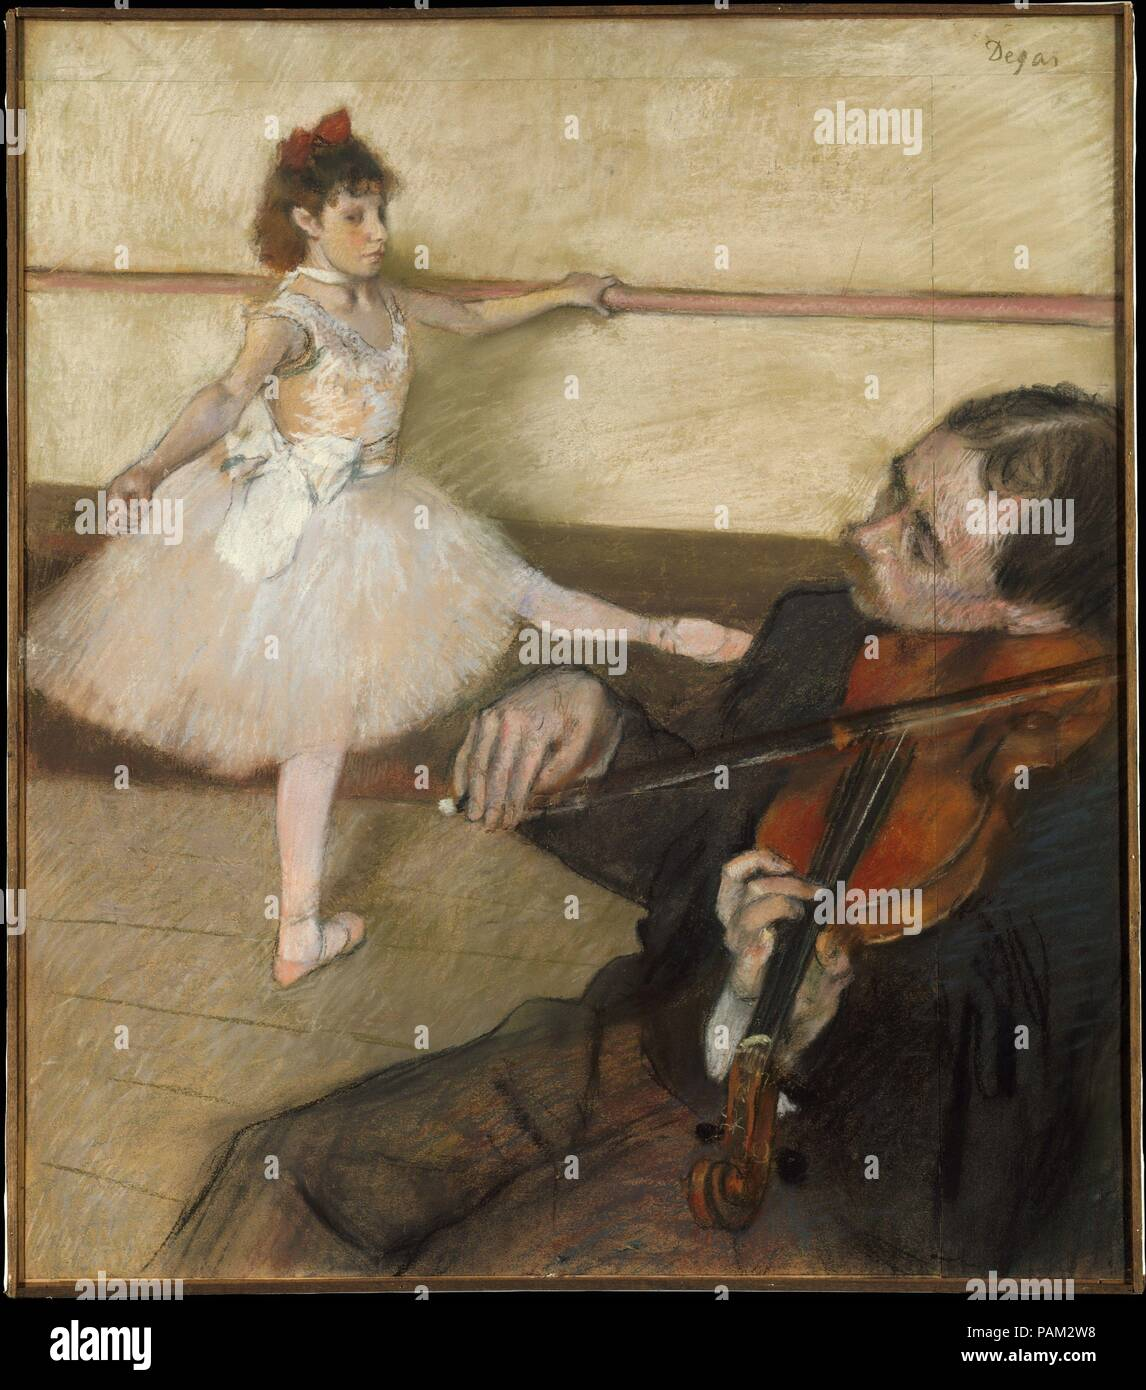 The Dance Lesson. Artist: Edgar Degas (French, Paris 1834-1917 Paris). Dimensions: 25 3/8 x 22 1/8 in. (64.5 x 56.2 cm). Date: ca. 1879.  Degas made various adjustments to this composition, presumably to accommodate the violinist in his final design. He added strips of paper at the top and to the right, and there is evidence to suggest that he may have altered the dancer's pose. A pastel study for the musician is in the Museum's collection (19.51.1). The present work was formerly owned by Gustave Caillebotte, who probably bought it from or soon after the Impressionist exhibition of 1879. In 18 - Stock Image